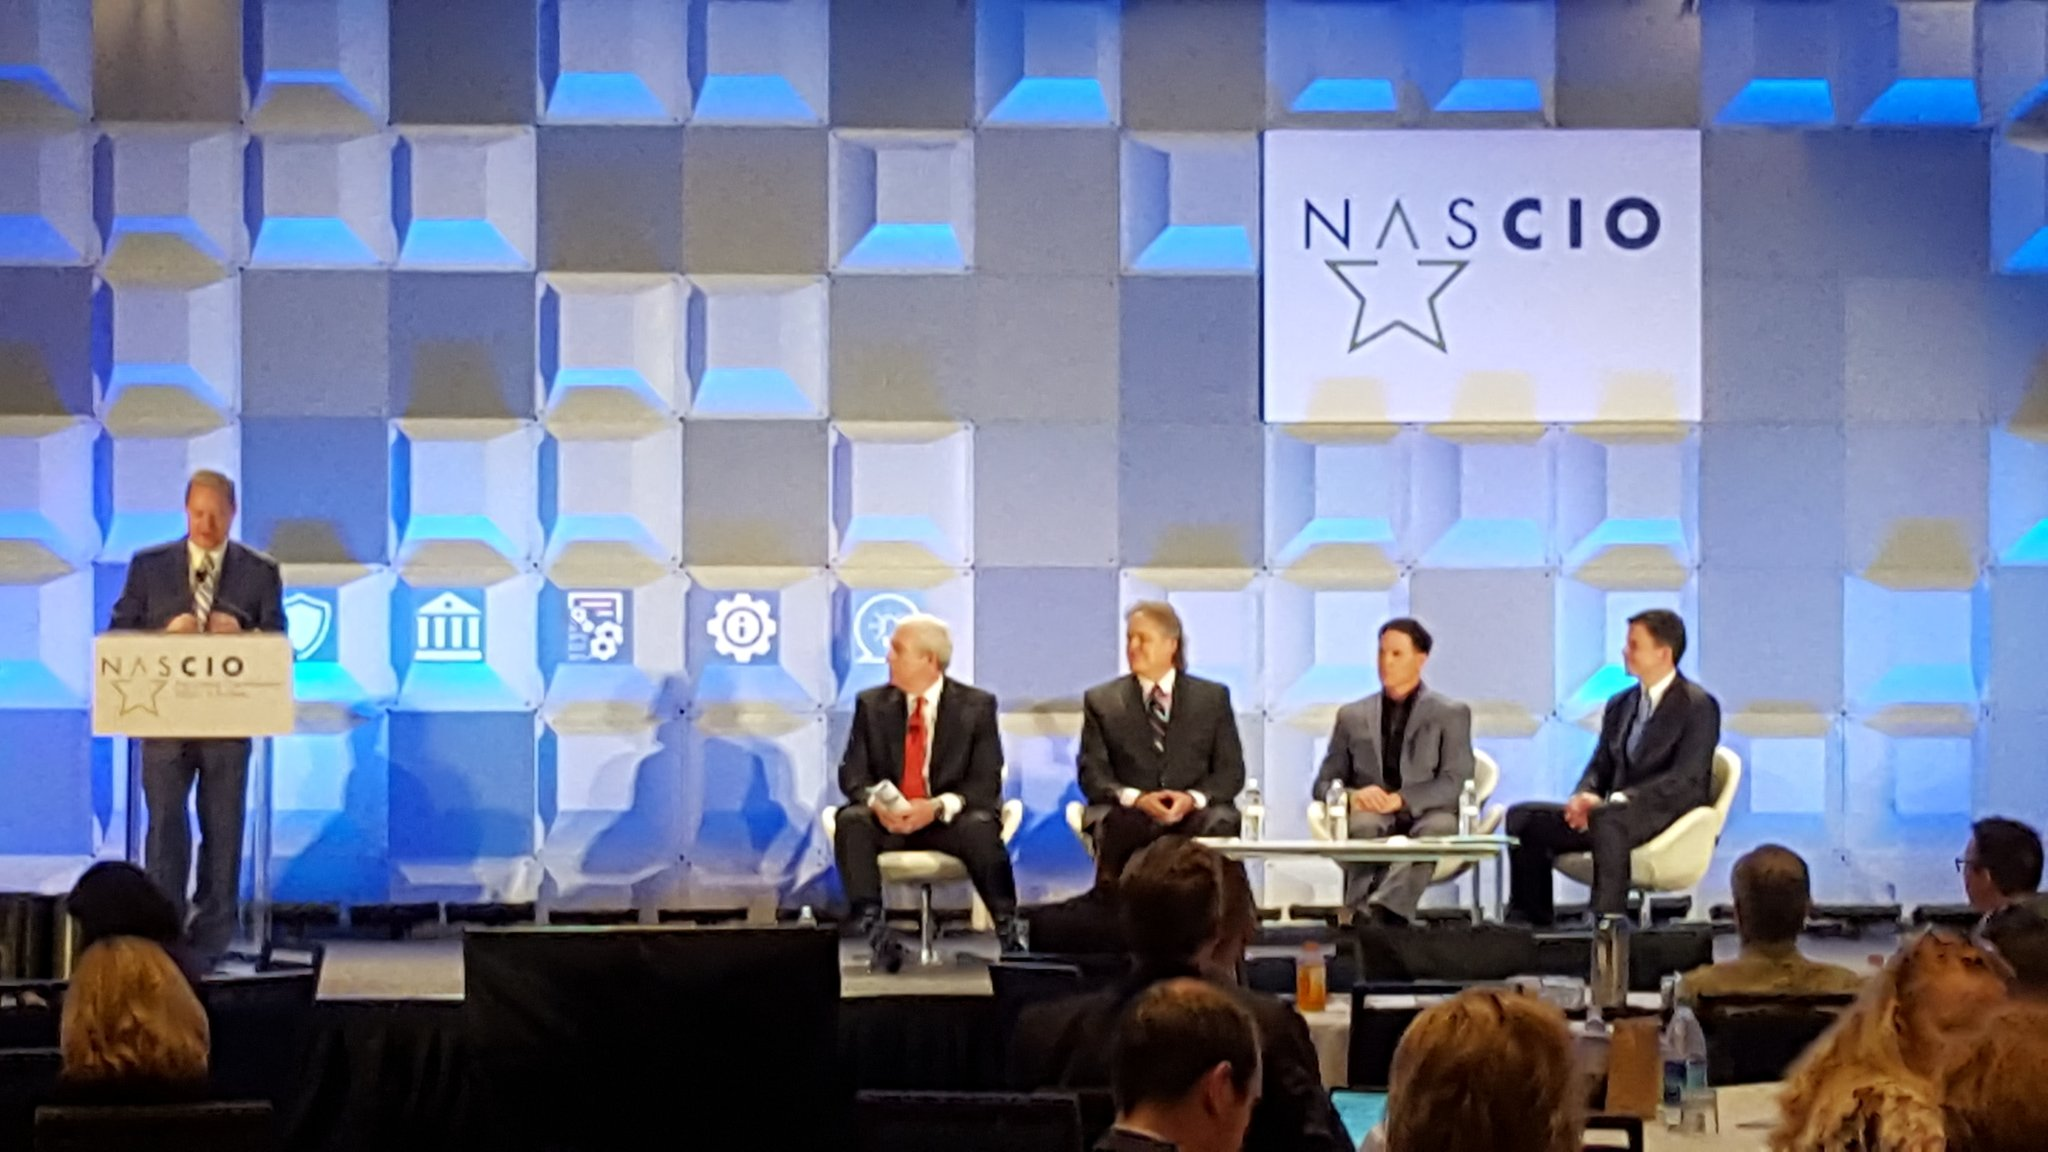 How Agile is State Government? @KeirBuckhurst discusses initial survey findings @Accenturepubsvc  #NASCIO17 https://t.co/WVarJz5UvF